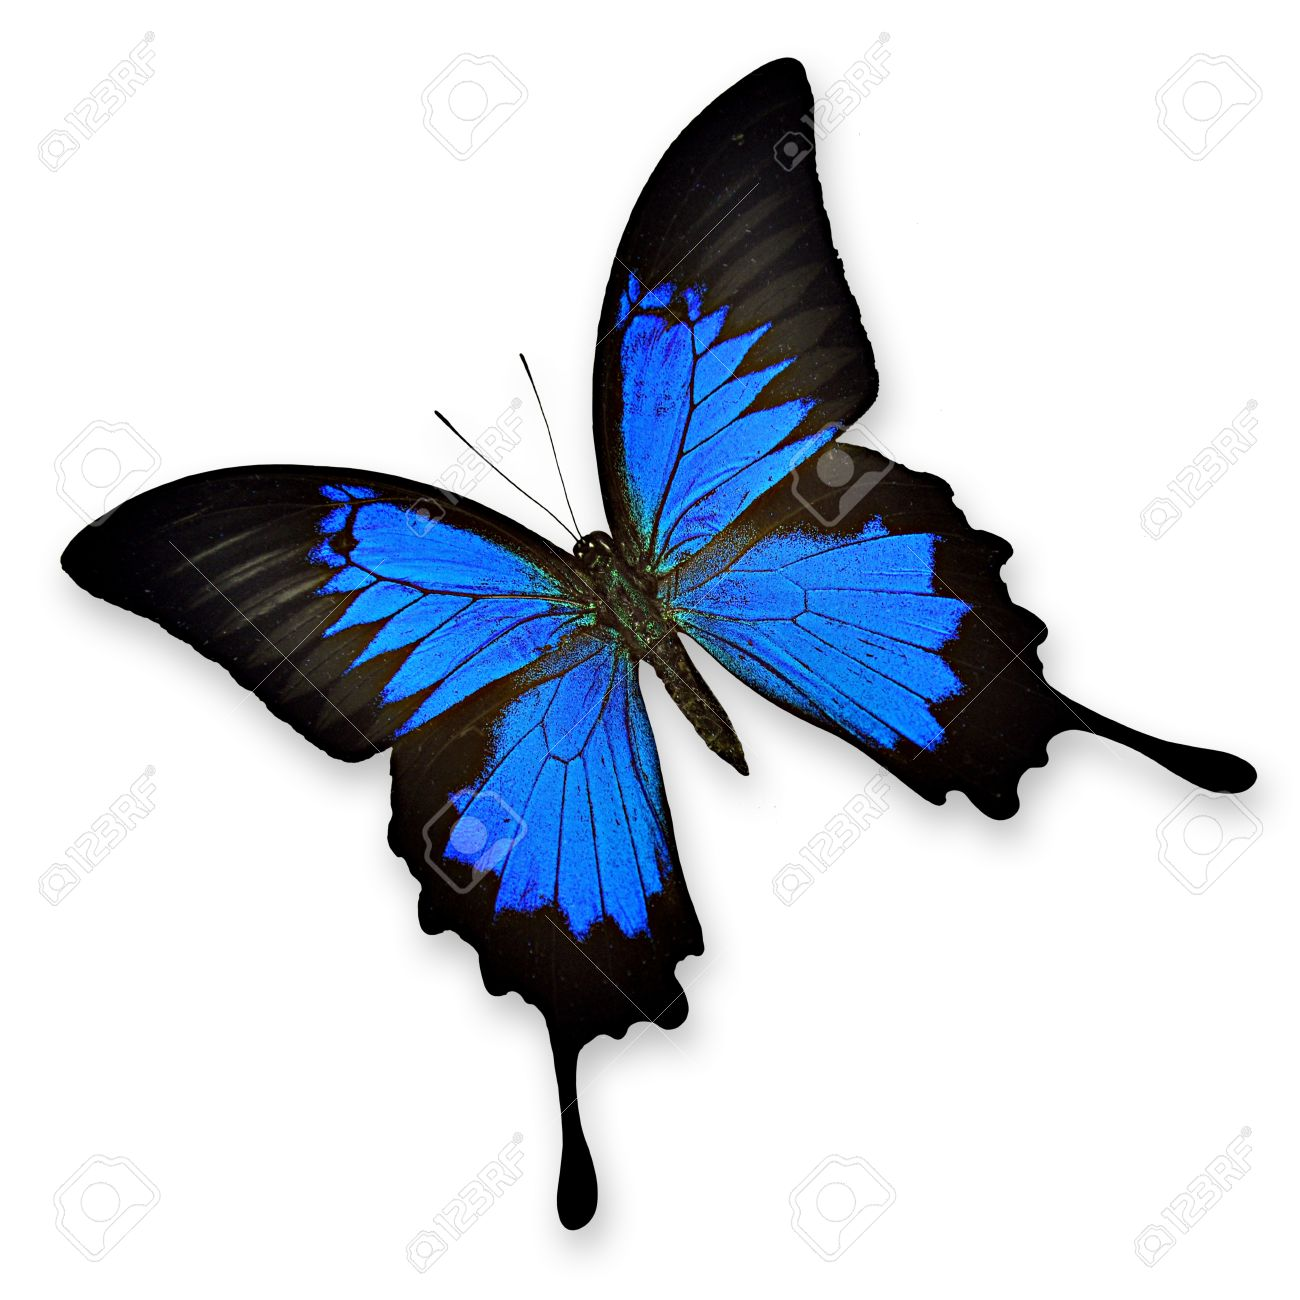 Ulysses Butterfly clipart #18, Download drawings